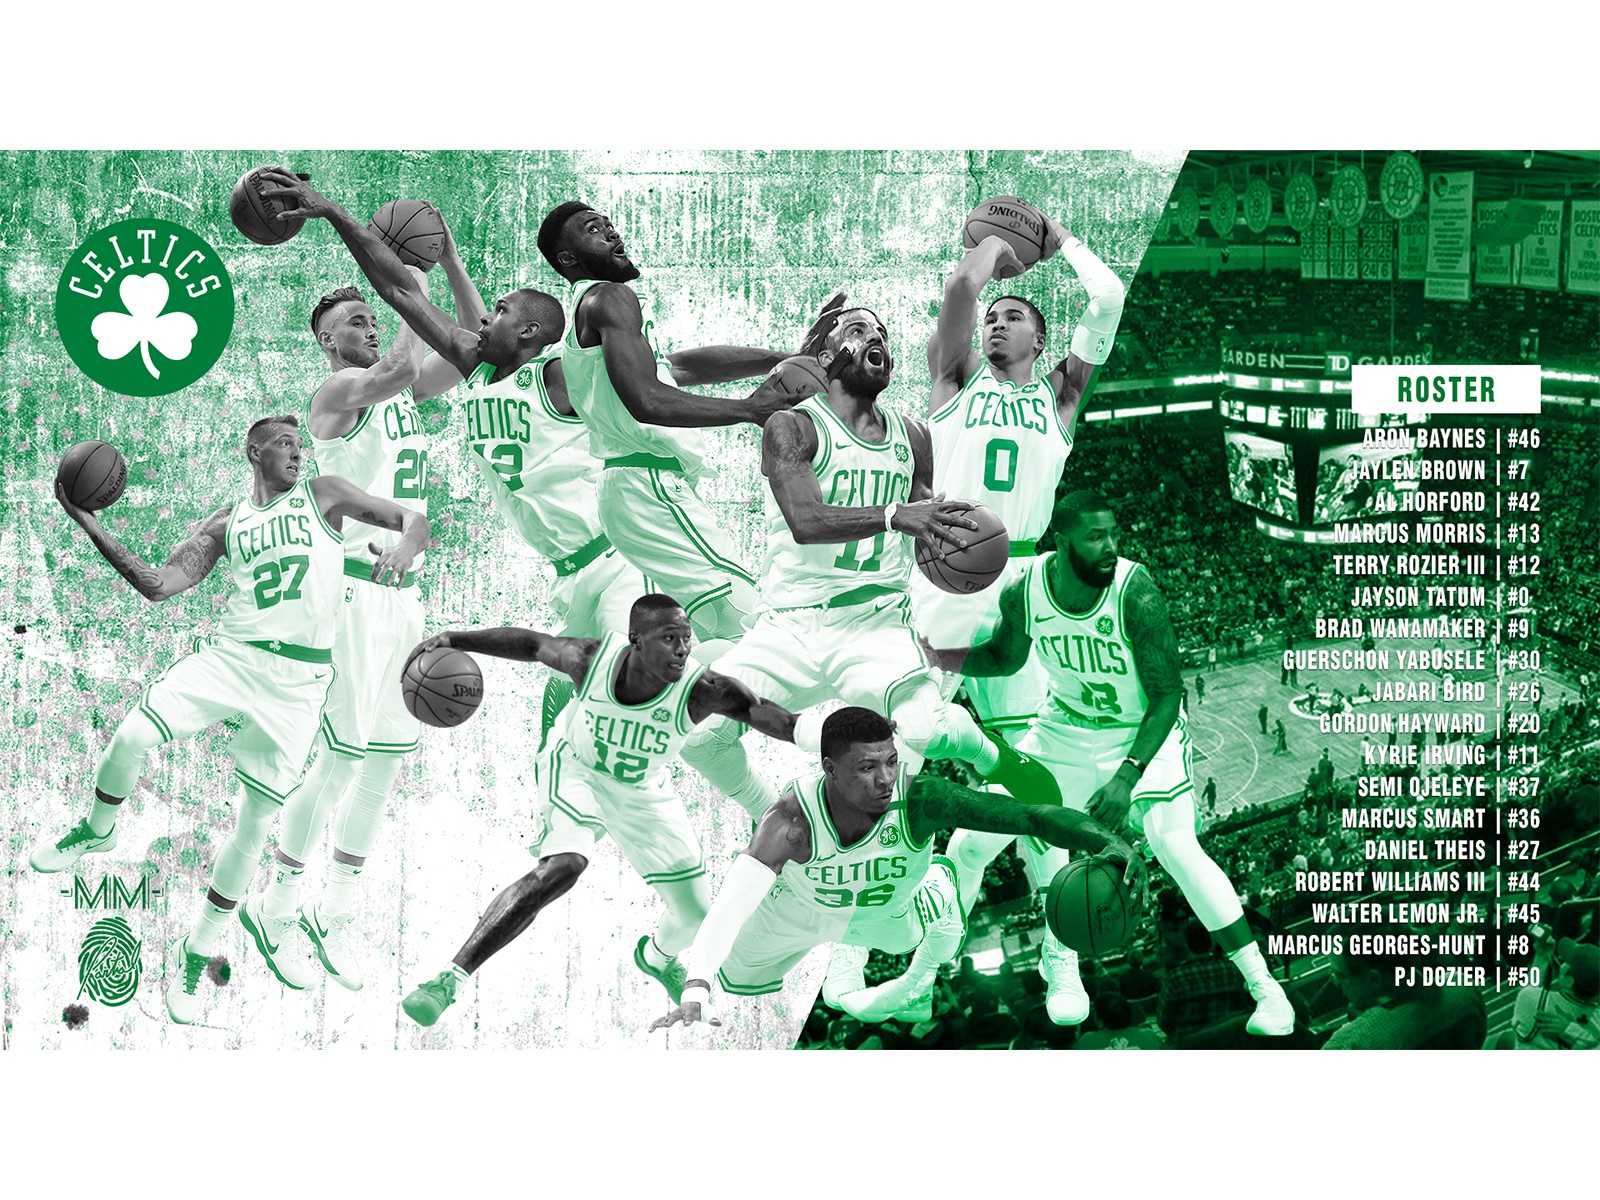 2019 Boston Celtics Poster Wallpaper By Mike Merrill On Dribbble